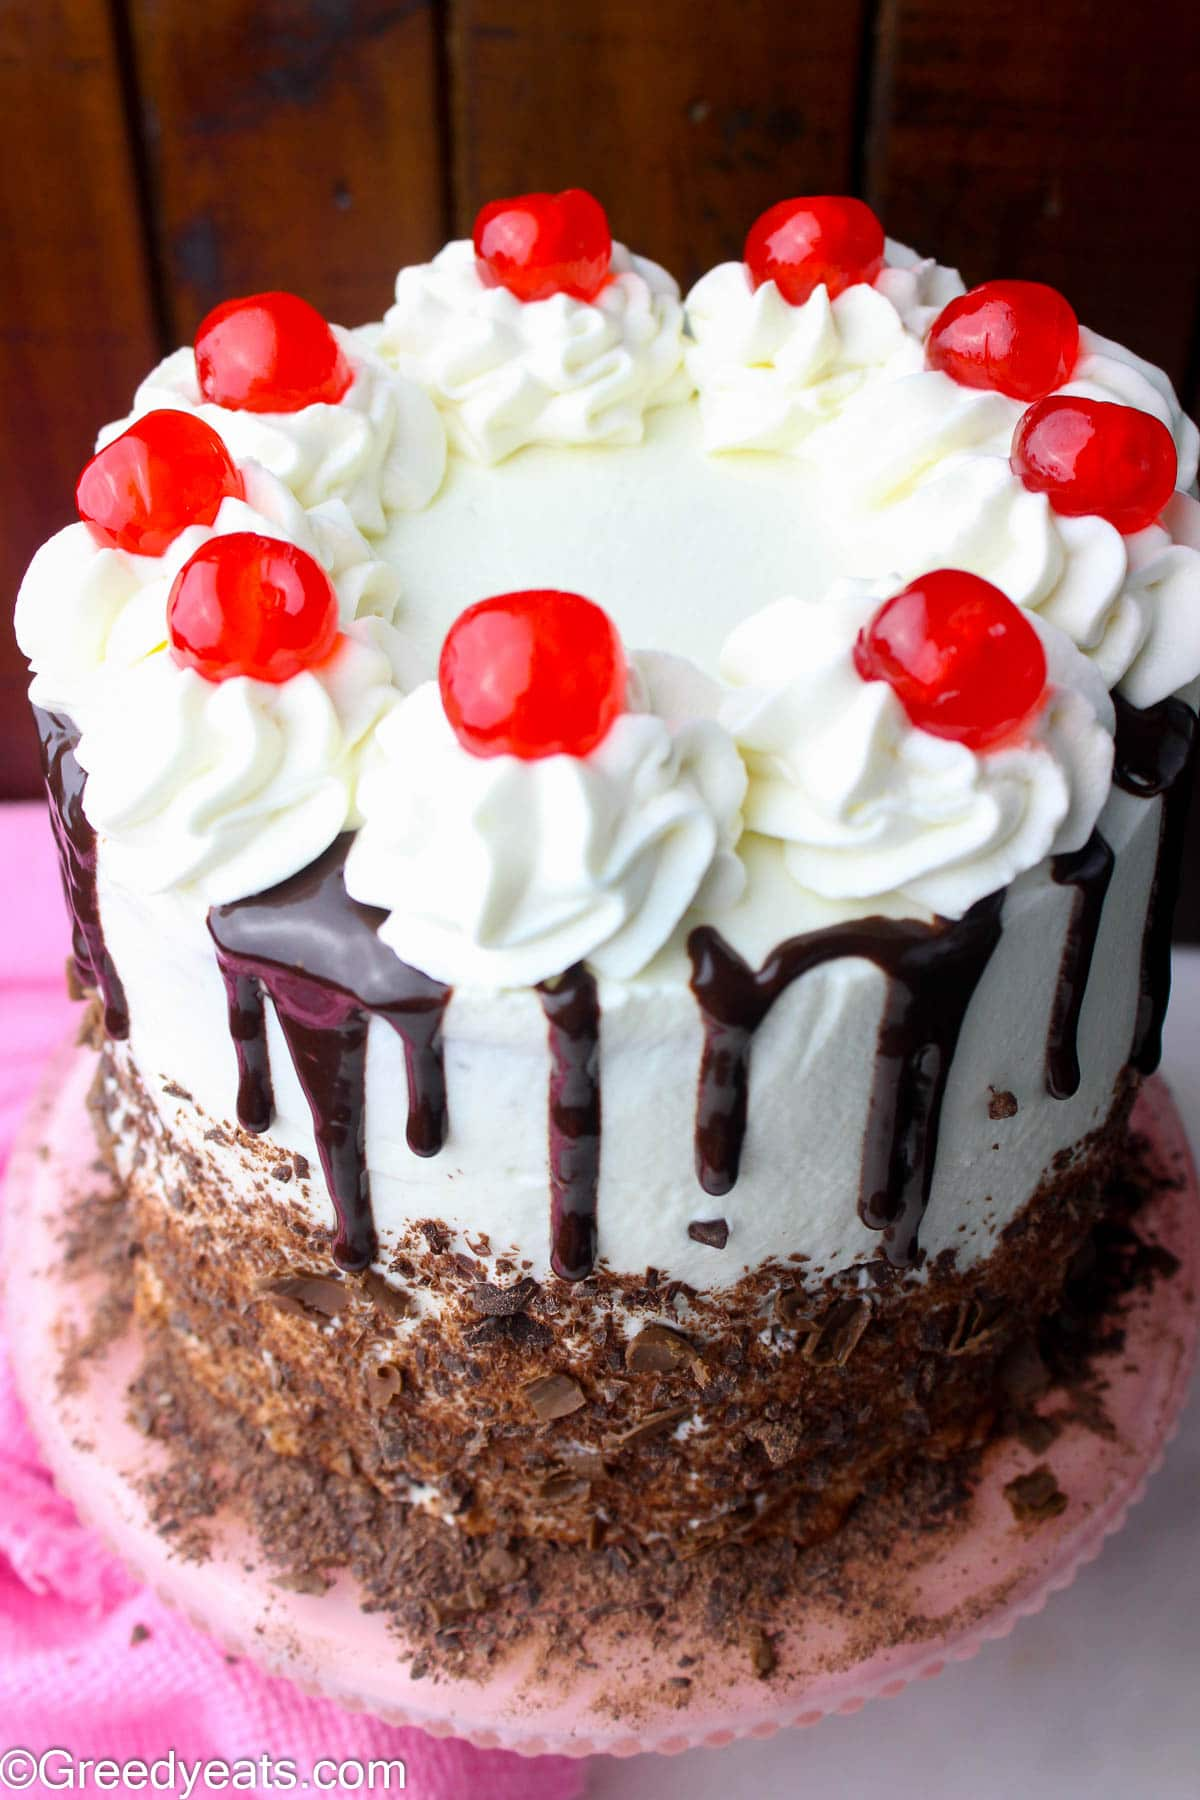 Black forest cake topped with whipped cream topping and layered with cherries.